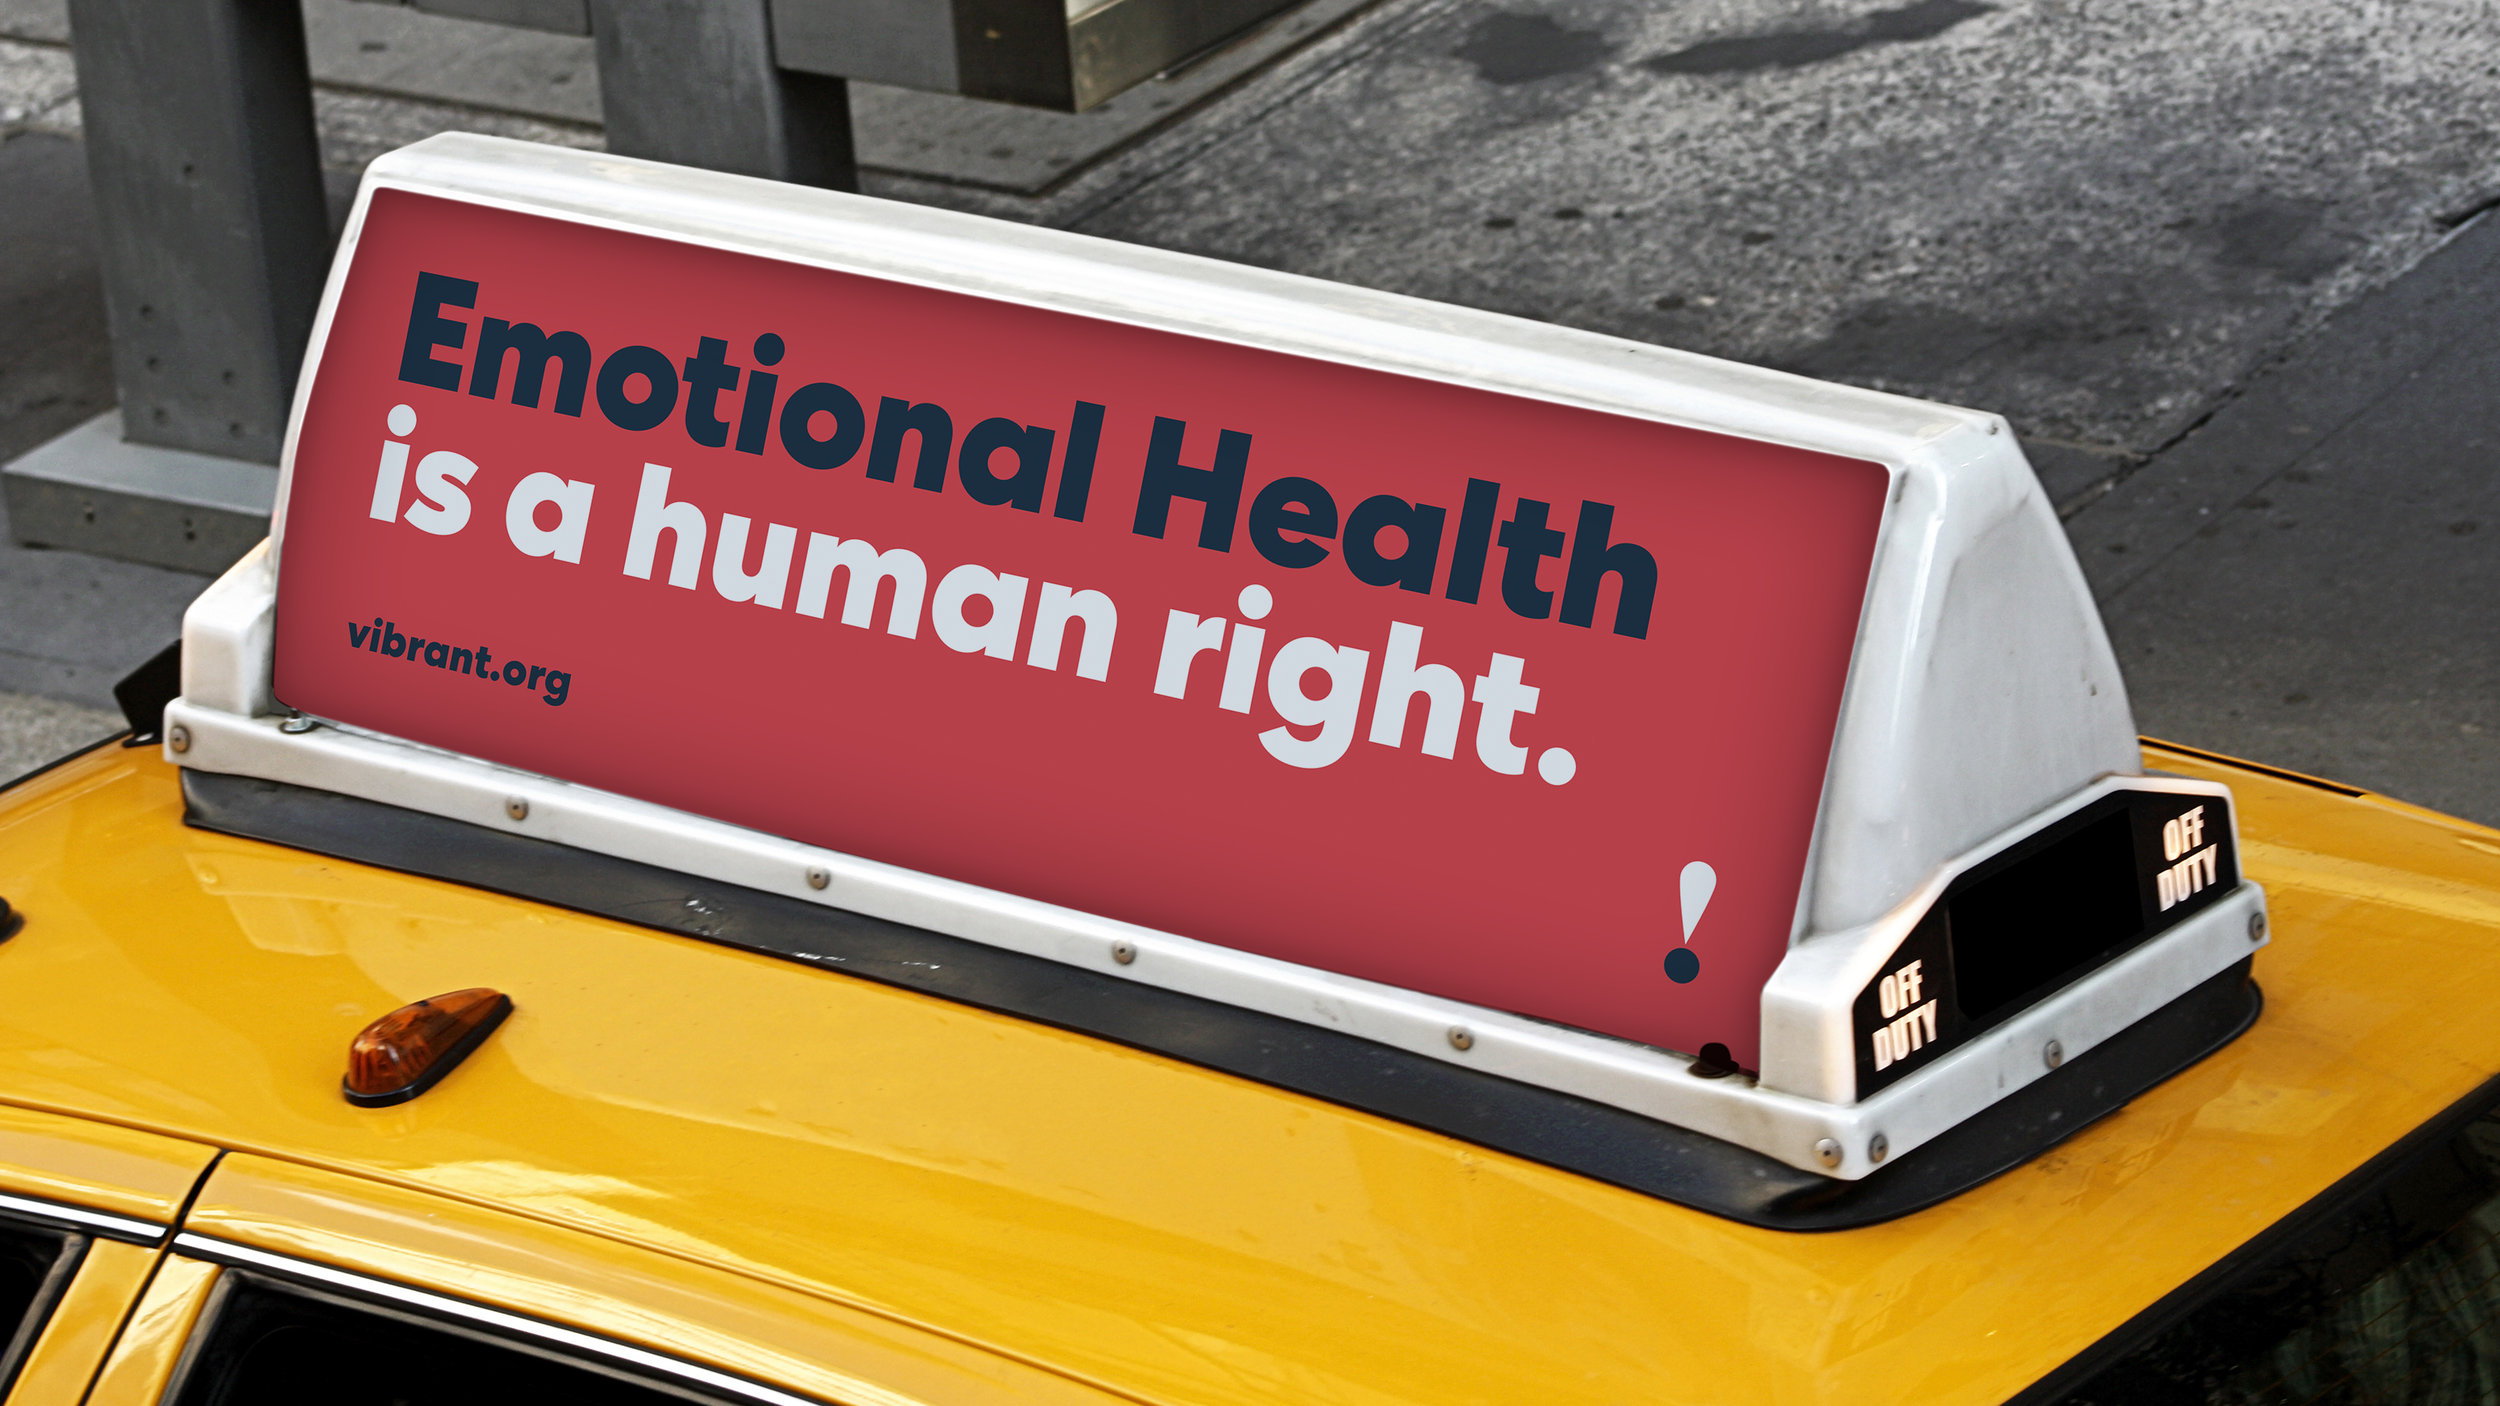 Brand launch campaign messaging written for Vibrant Emotional Health by Good Stuff Partners of Sausalito, a San Francisco Bay Area branding and design communications agency for purpose driven brands, companies and nonprofits.